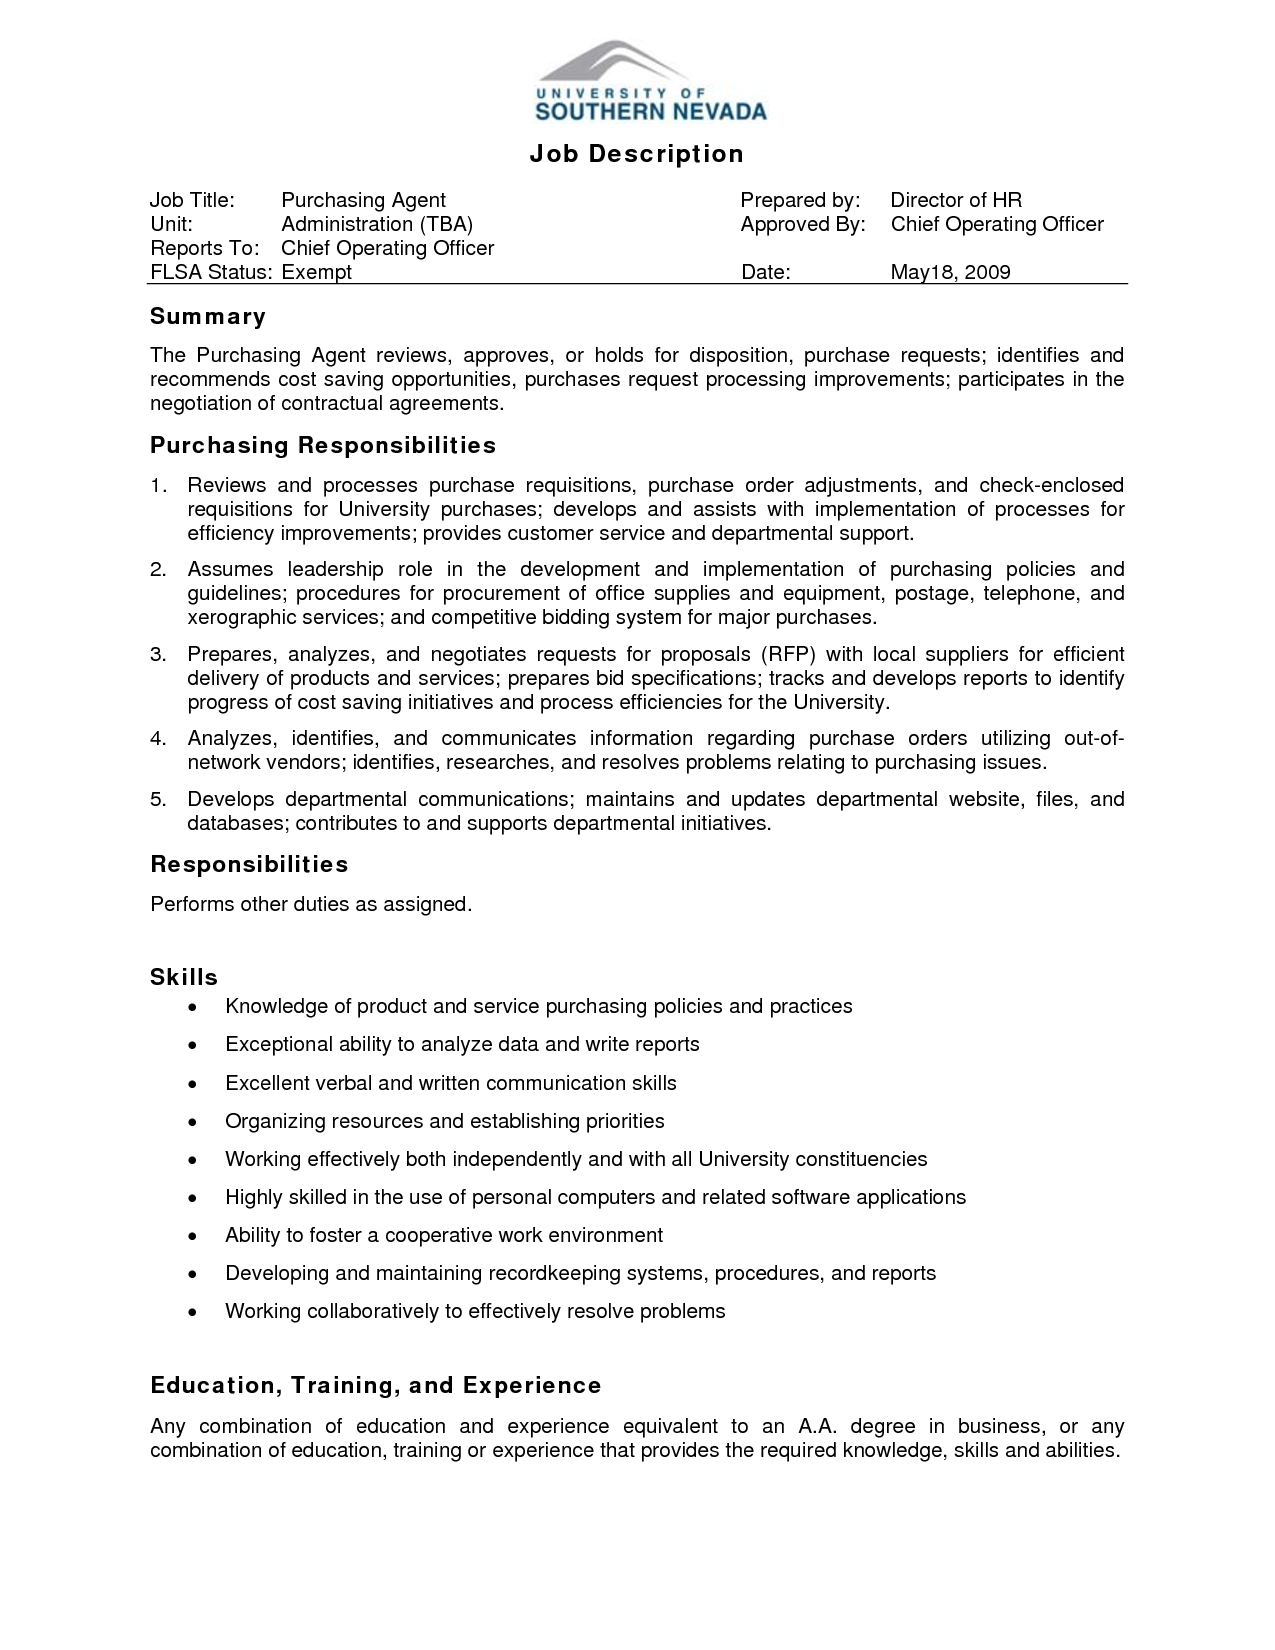 Executive Assistant Roles And Responsibilities And Key Strengths Of Executive  Assistant  Executive Assistant Skills